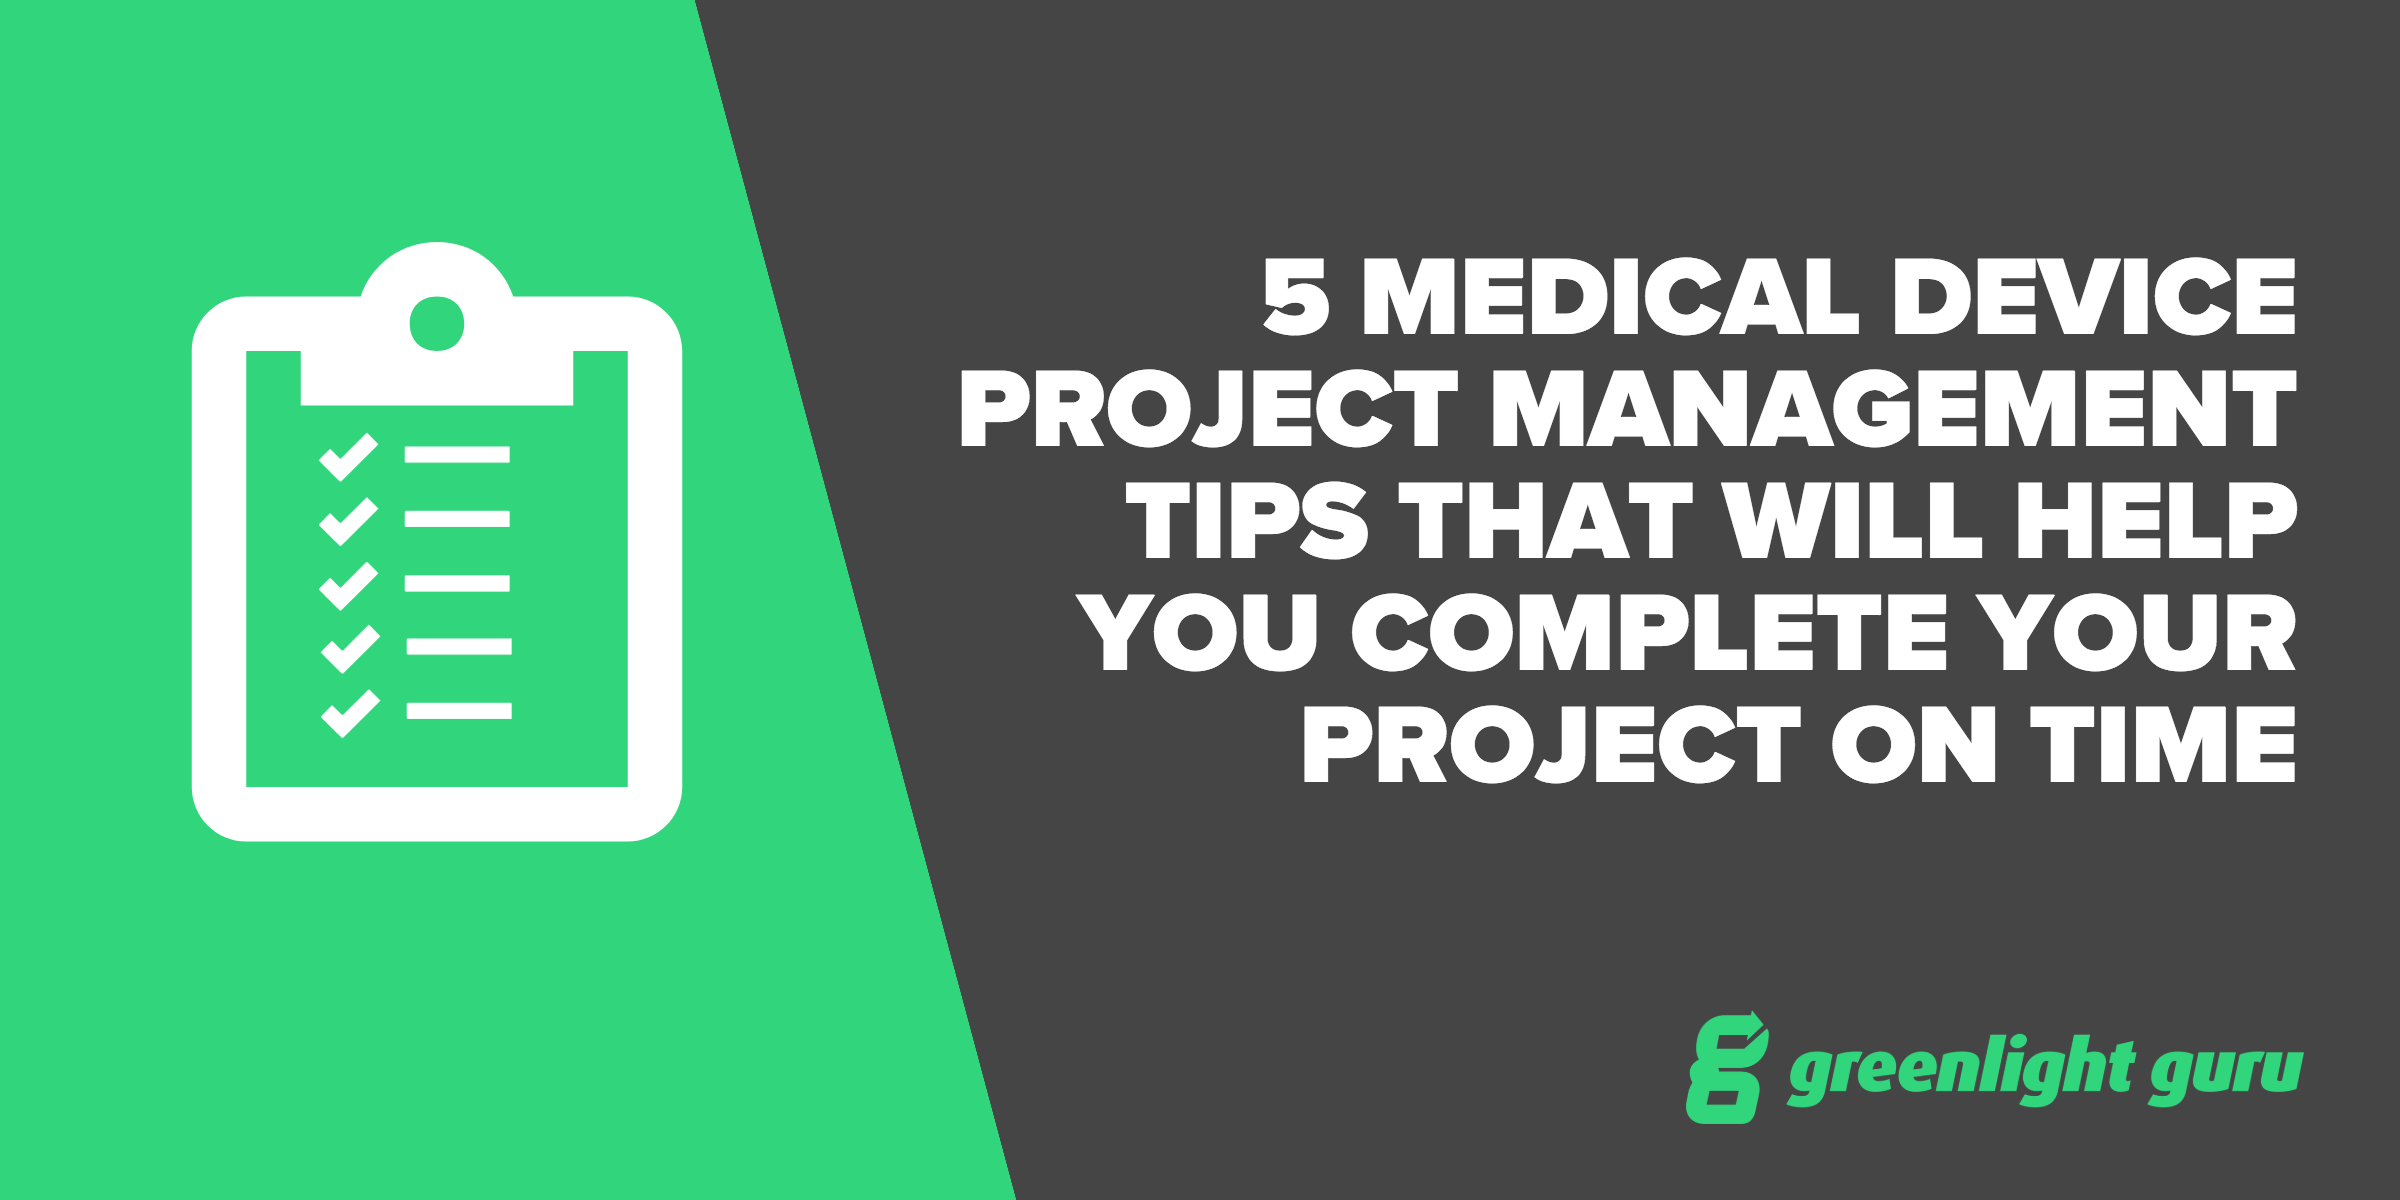 5 Medical Device Project Management Tips That Will Help You Complete Your Project On Time - Featured Image